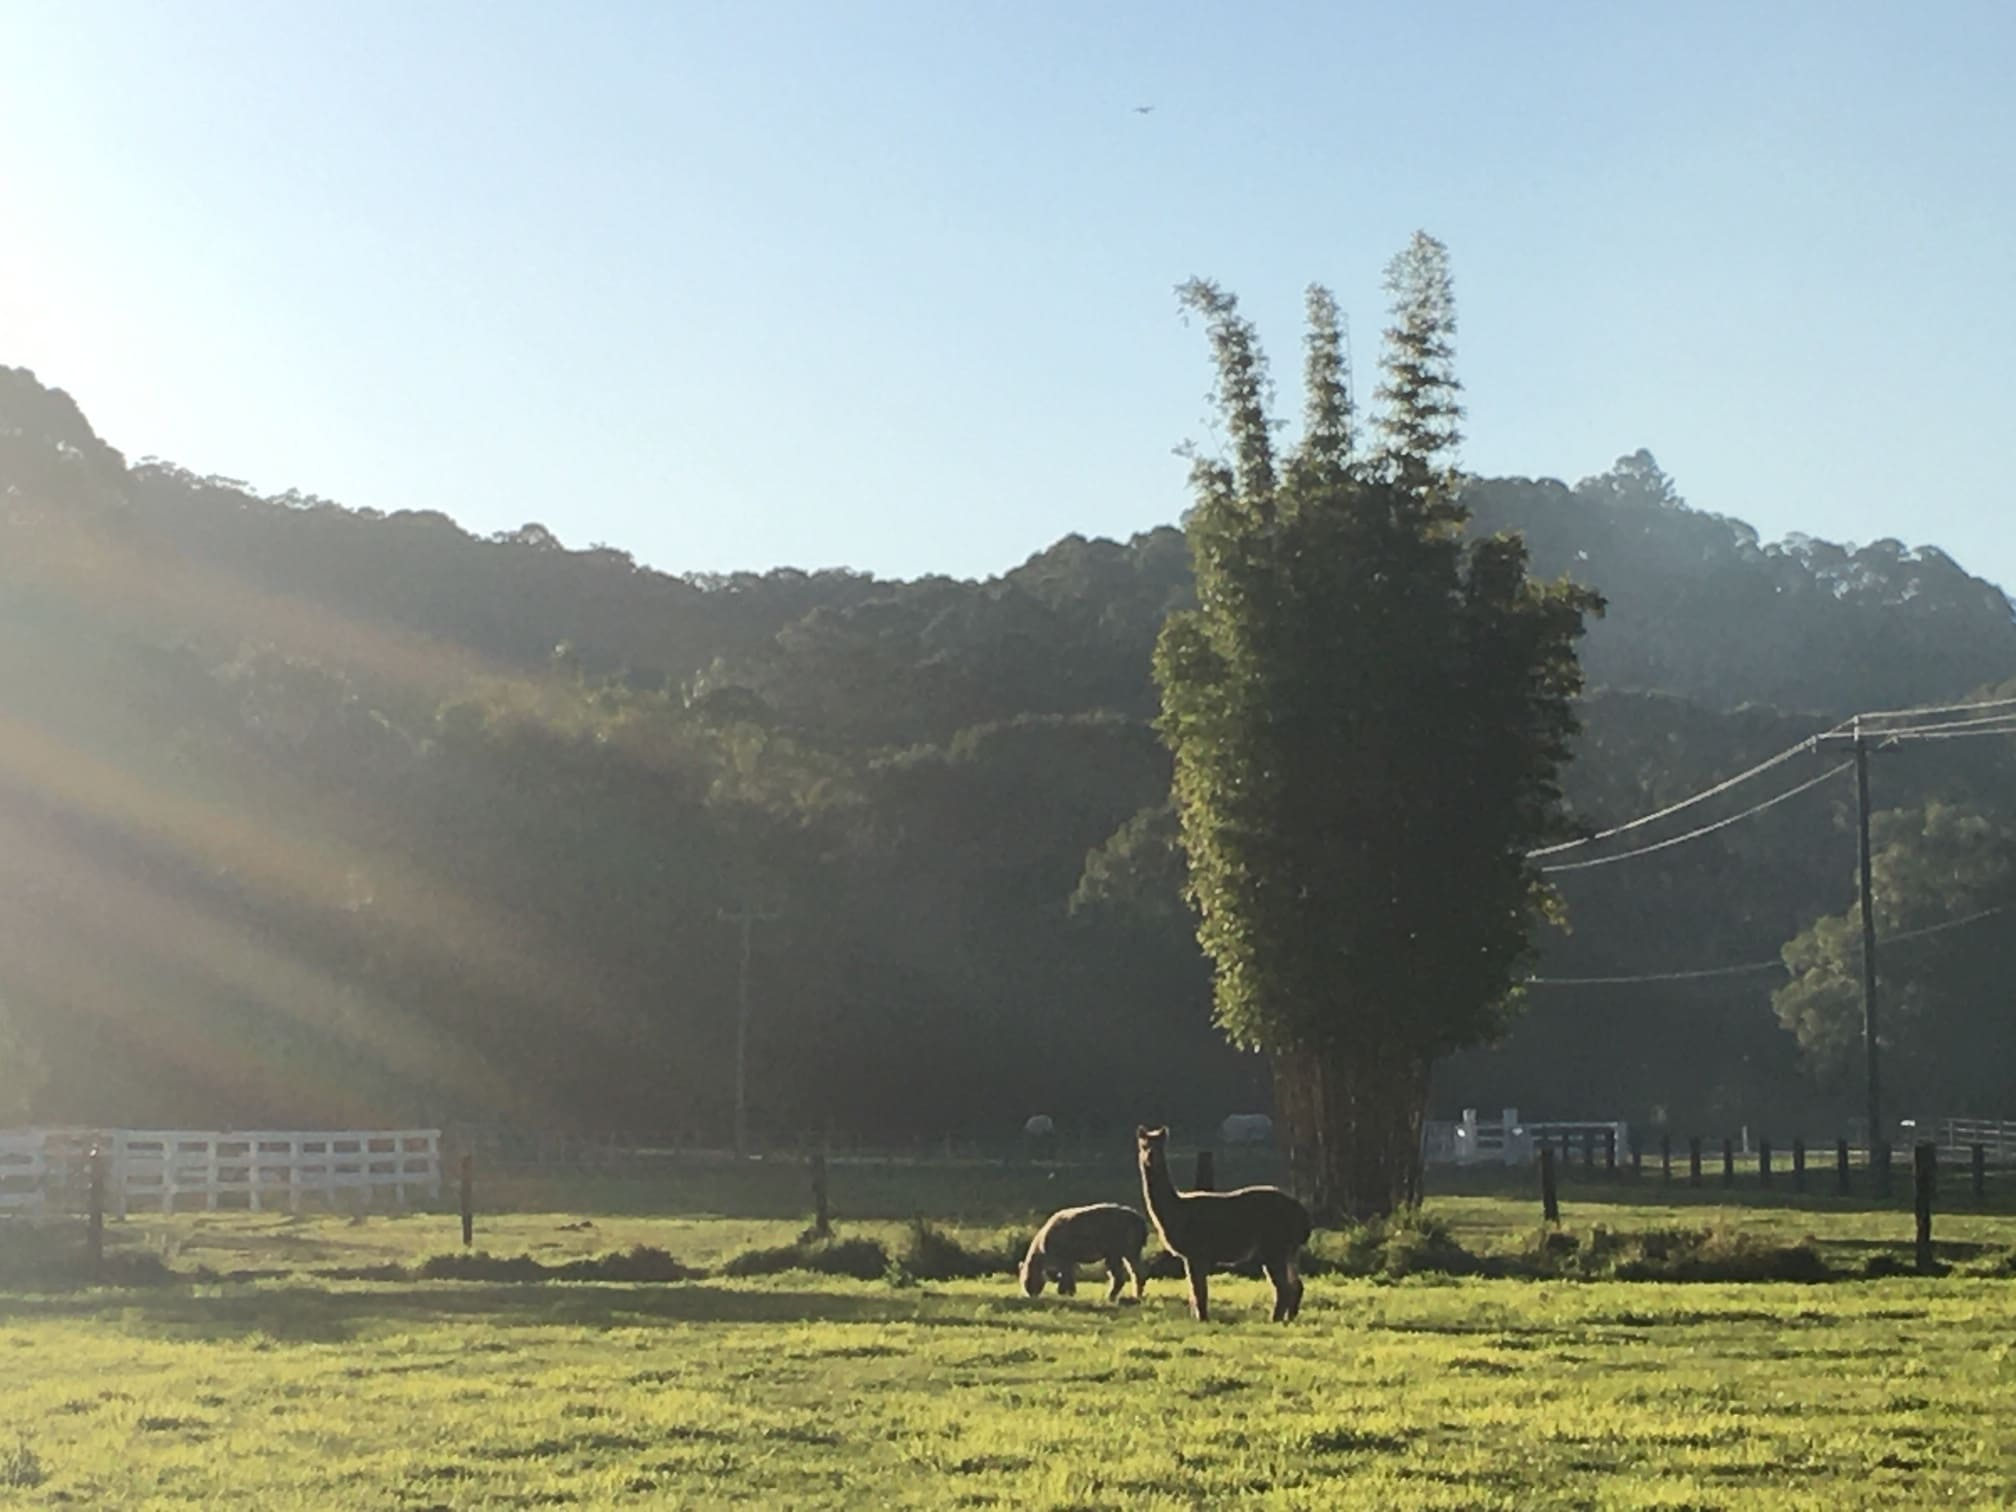 Our alpacas Billy and Emmy grazing in the paddock. gallery image